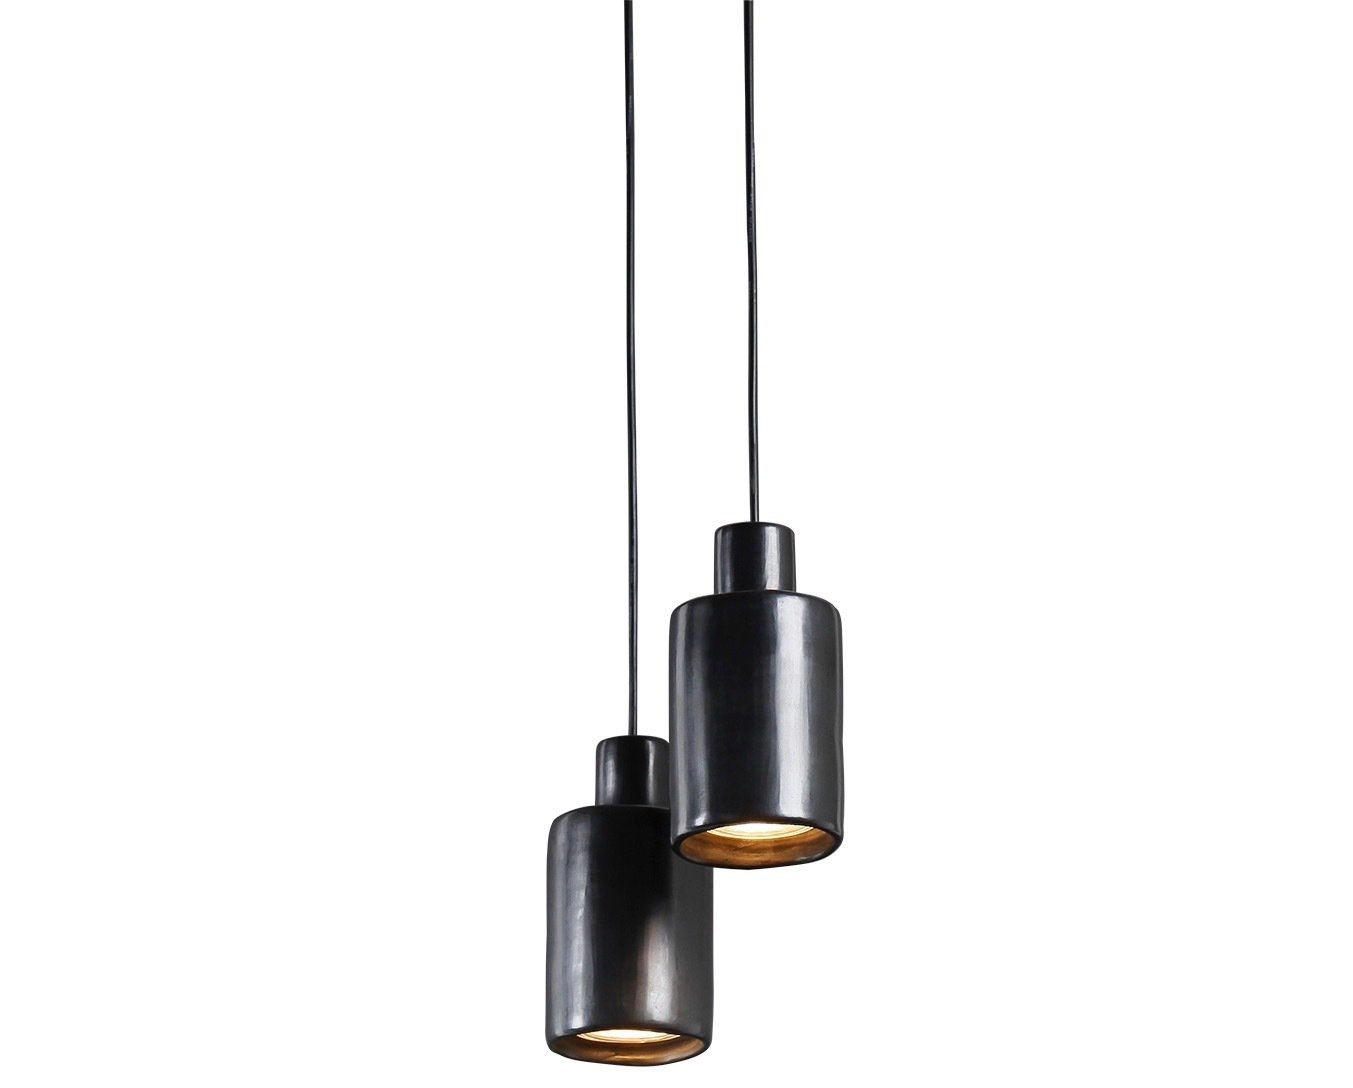 Living Room and Pendant Lighting The Can light by David Pompa is housed in a lustrous ceramic casing made of barro negro, a Mexican clay that turns smoky black when fired.  Photo 16 of 25 in Meet the Dwell 24: Two Dozen Up-and-Coming Designers to Watch in 2018